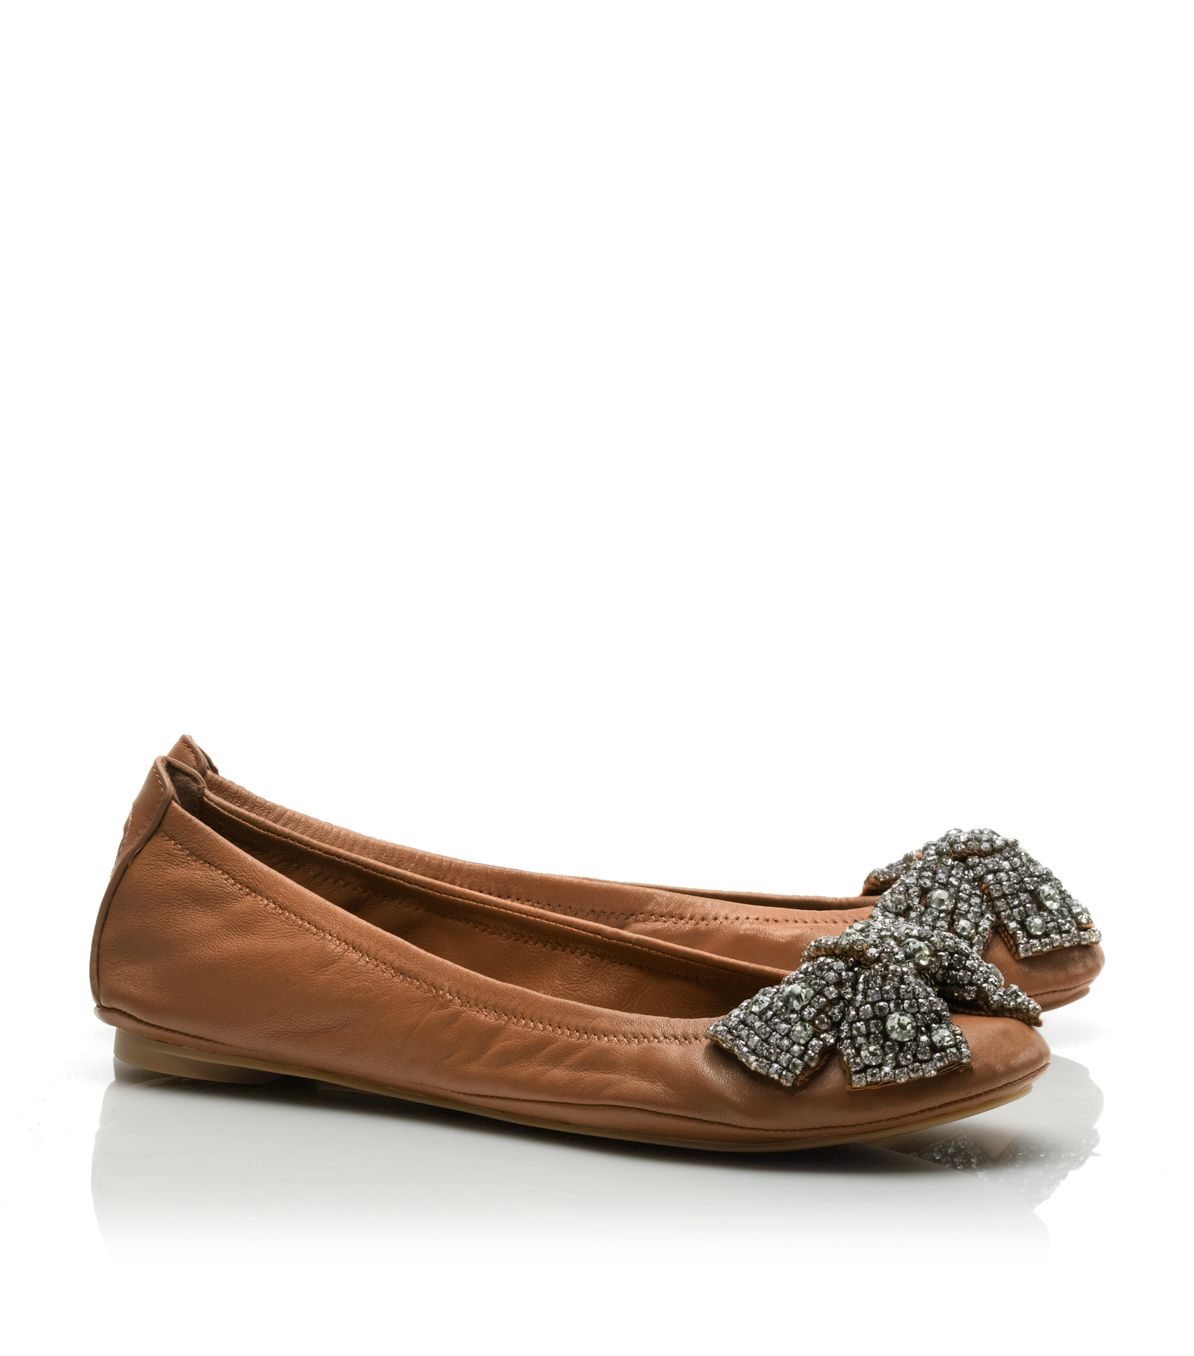 37b0d0265e2 Lyst - Tory Burch Leather Eddie Bow Ballet Flat in Brown